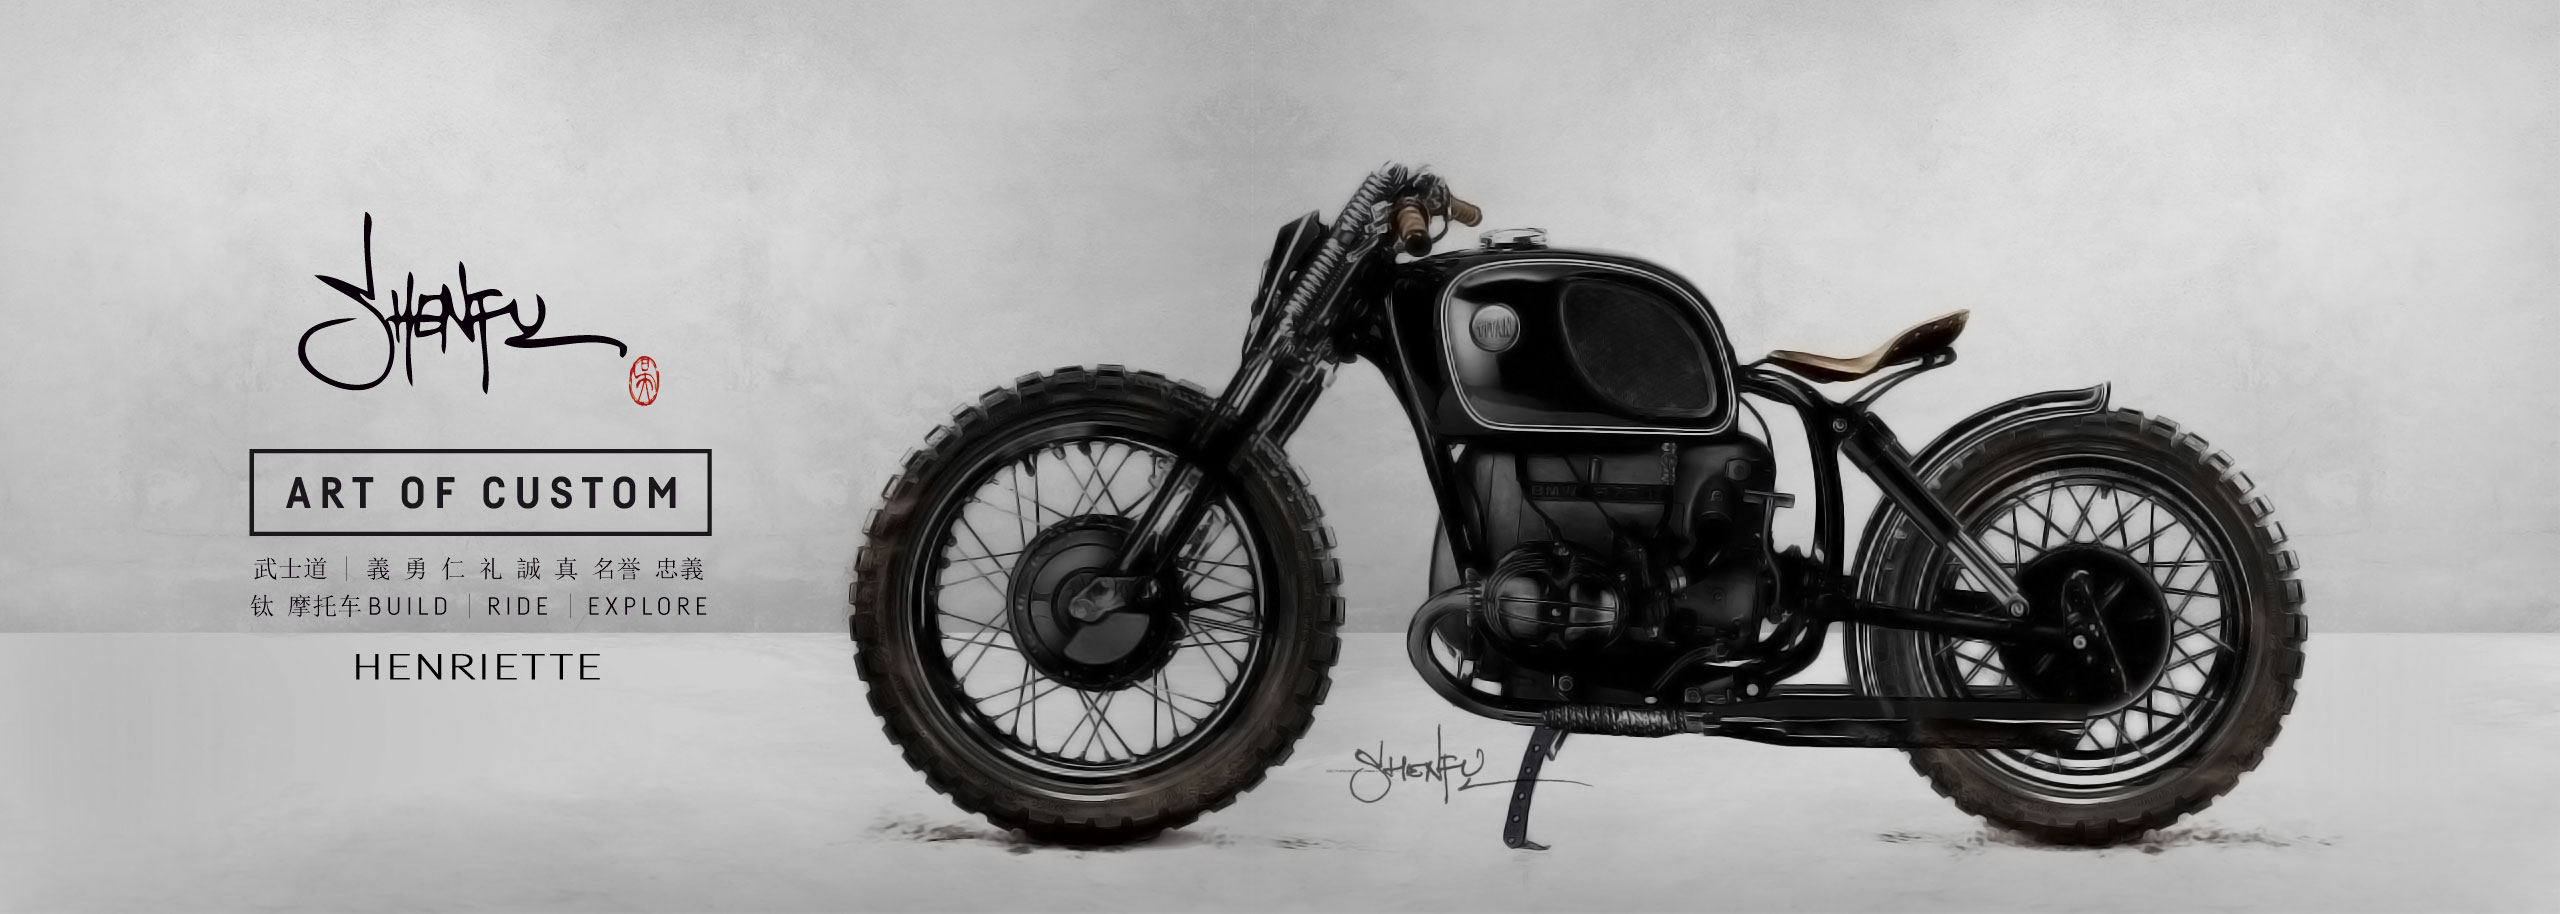 Titan-Motorcycle-Cafe-Racer-Graz-Bike-Concept-Art-Bike-Illustration-Idea-Inspiration-by-SHENFU-Illu-Custom-Bikes-Drawing_BMW-Henriette